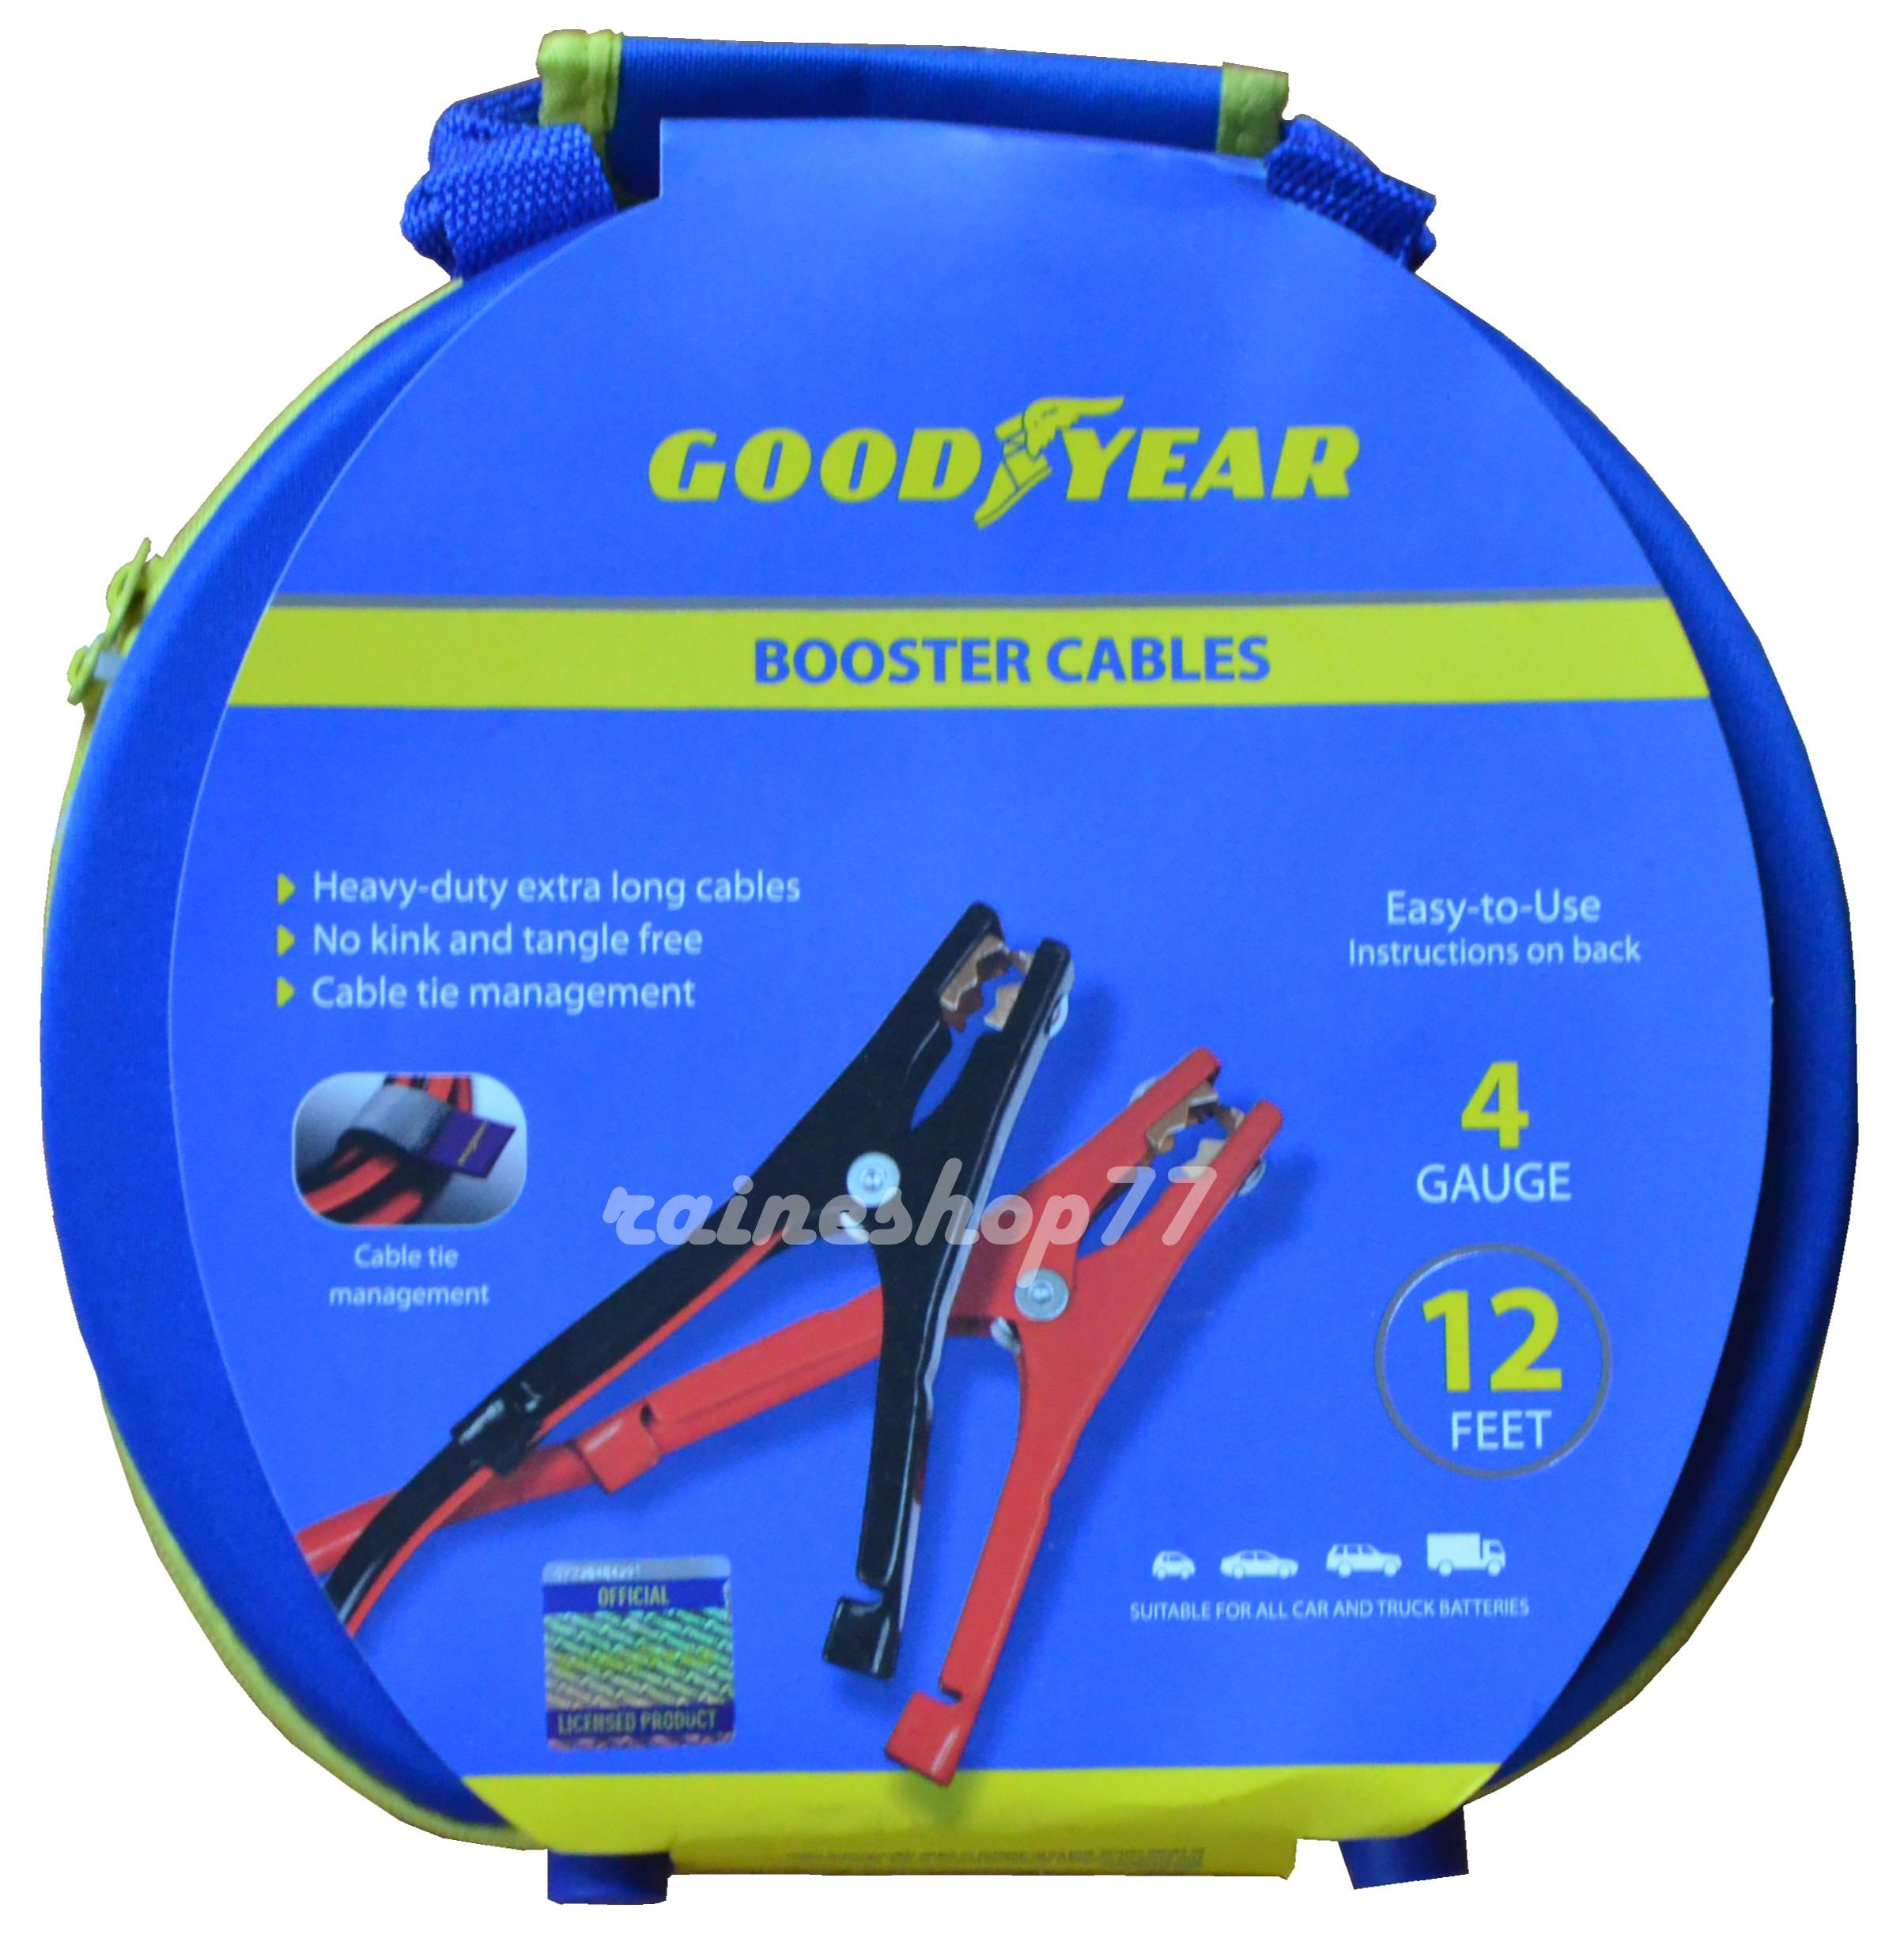 Goodyear GY1069 \ Heavy Duty Jumper Cables \ 16 Feet Long \ 4 Gauge Thick \ Emergency Booster \ Carry Case Included \ Compatible with All Vehicles \ Copper Contacts